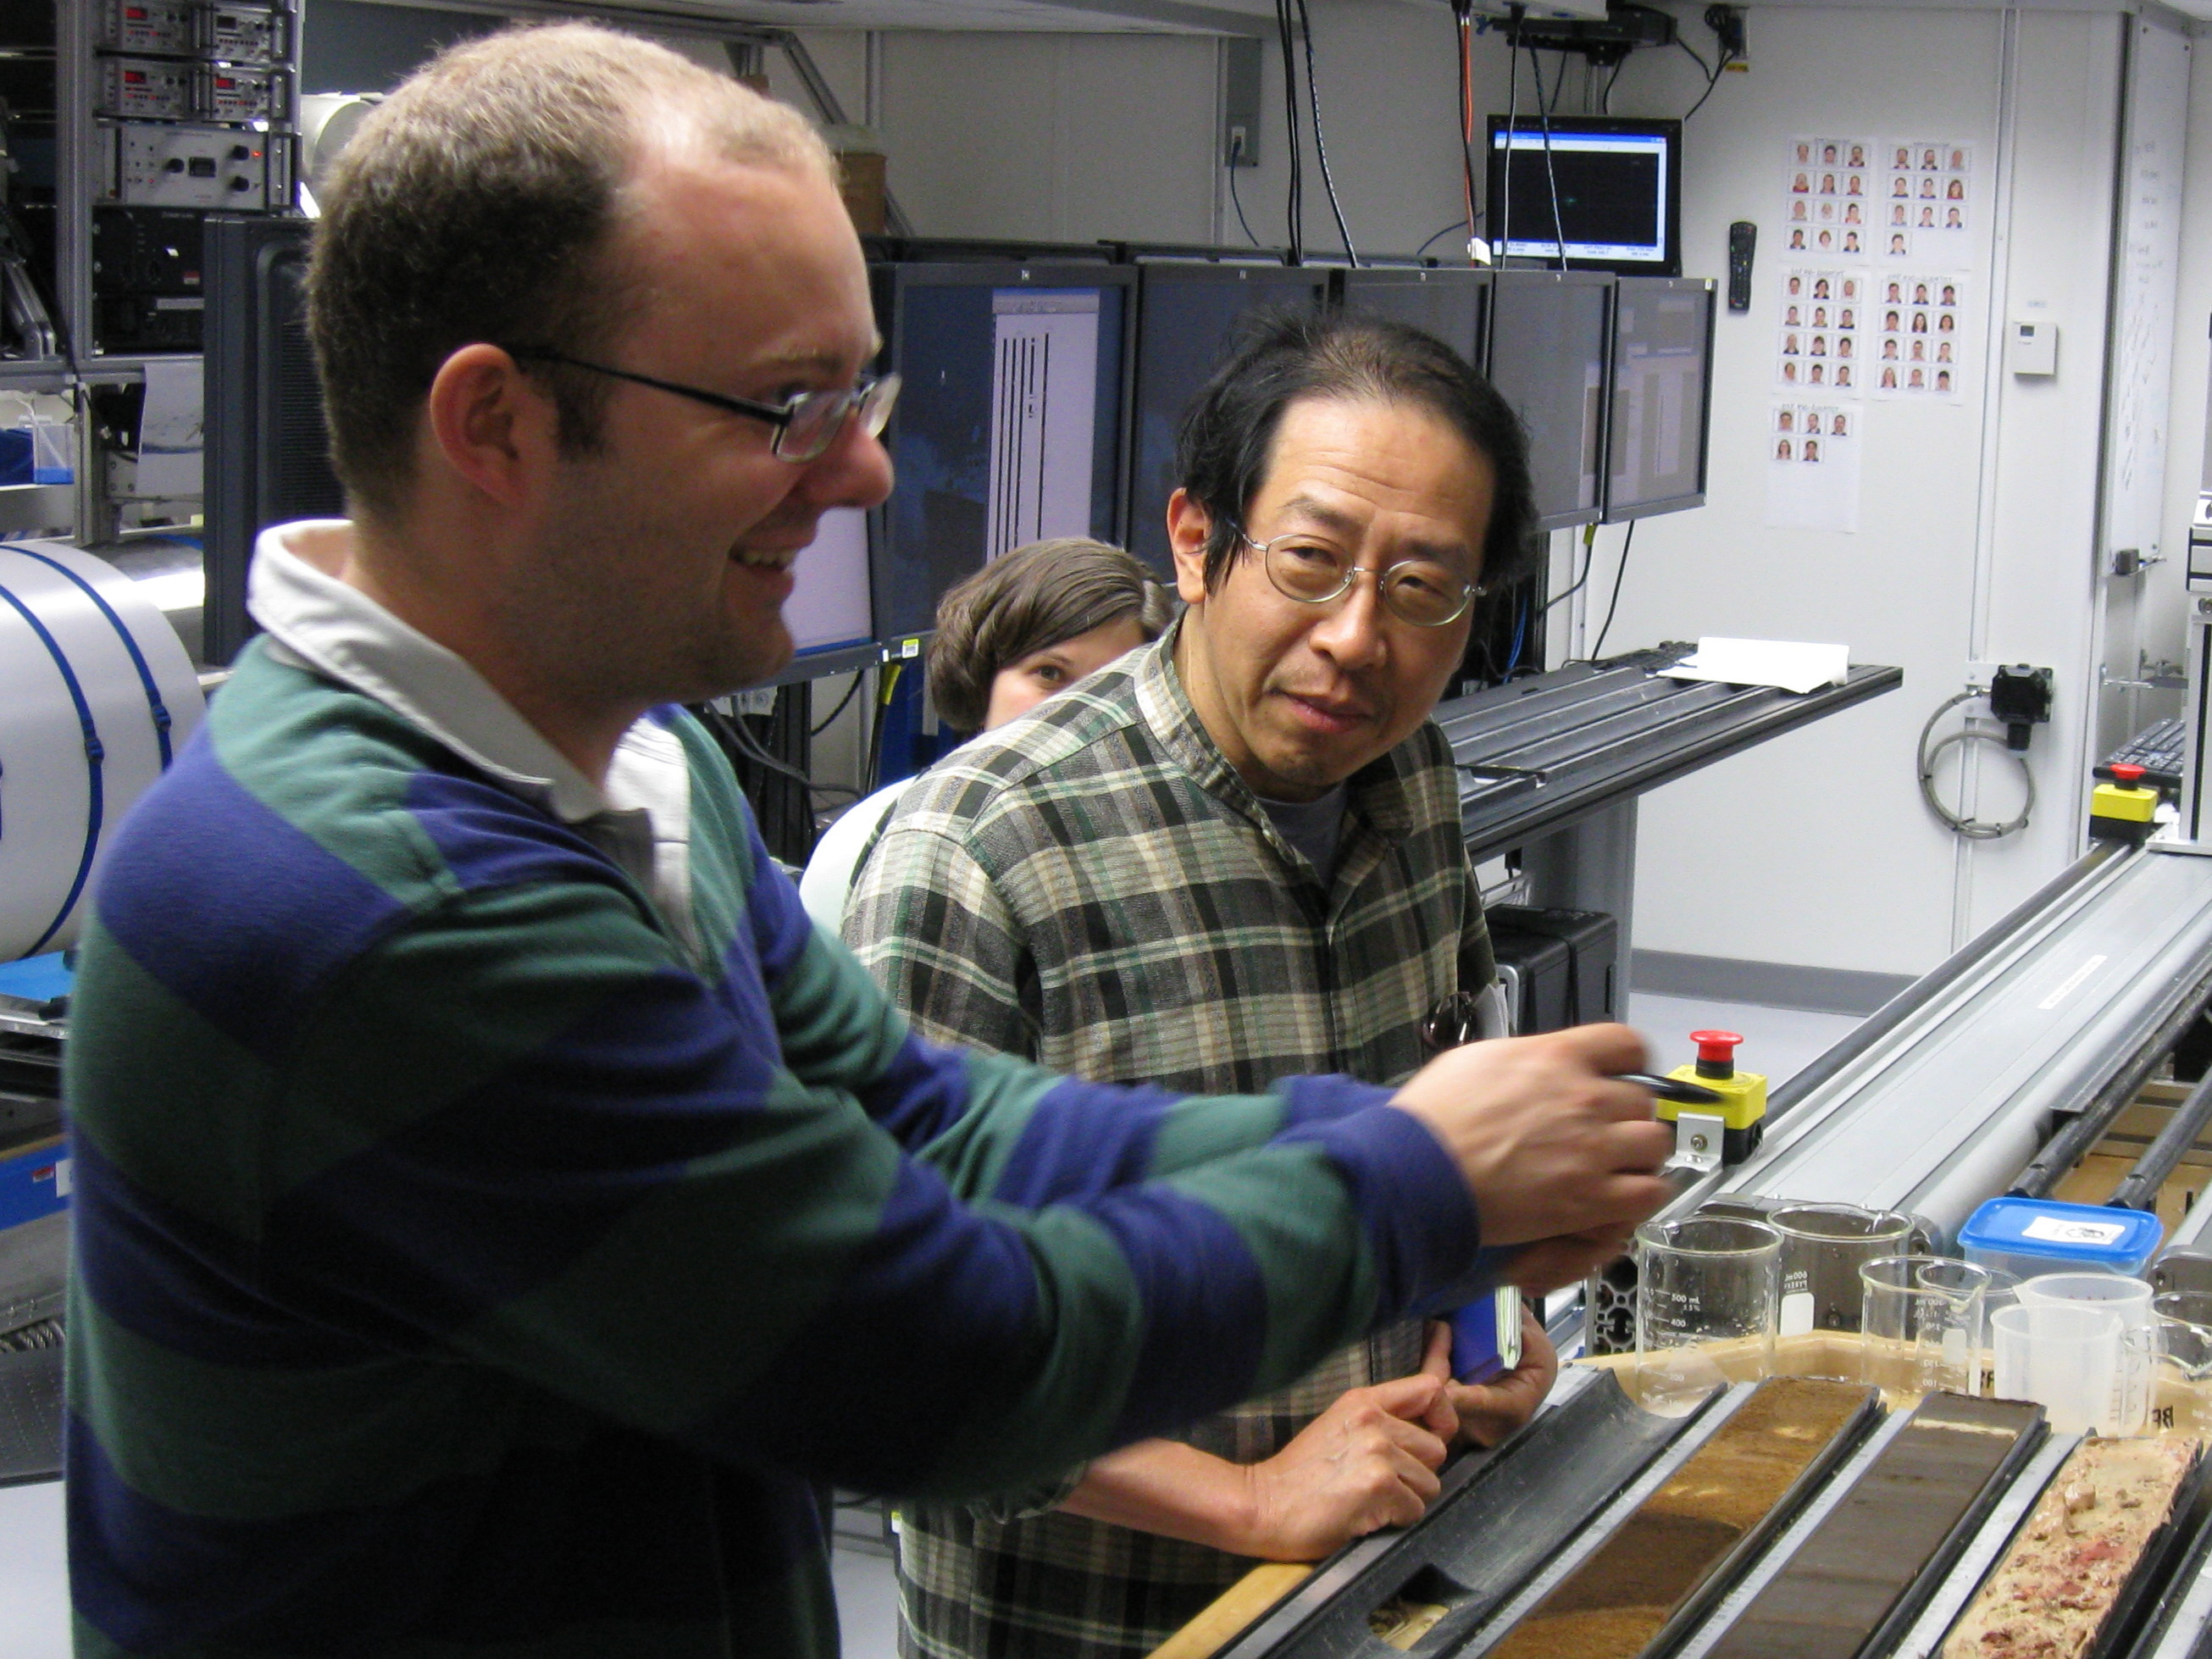 Expedition 320 Co-chief Scientists Heiko Pälike (University of Bremen, Germany) and Hiroshi Nishi (Hokkaido University, Japan) in the Core Lab. Image credit: Integrated Ocean Drilling Program/United Stated Implementing Organization (IODP/USIO)